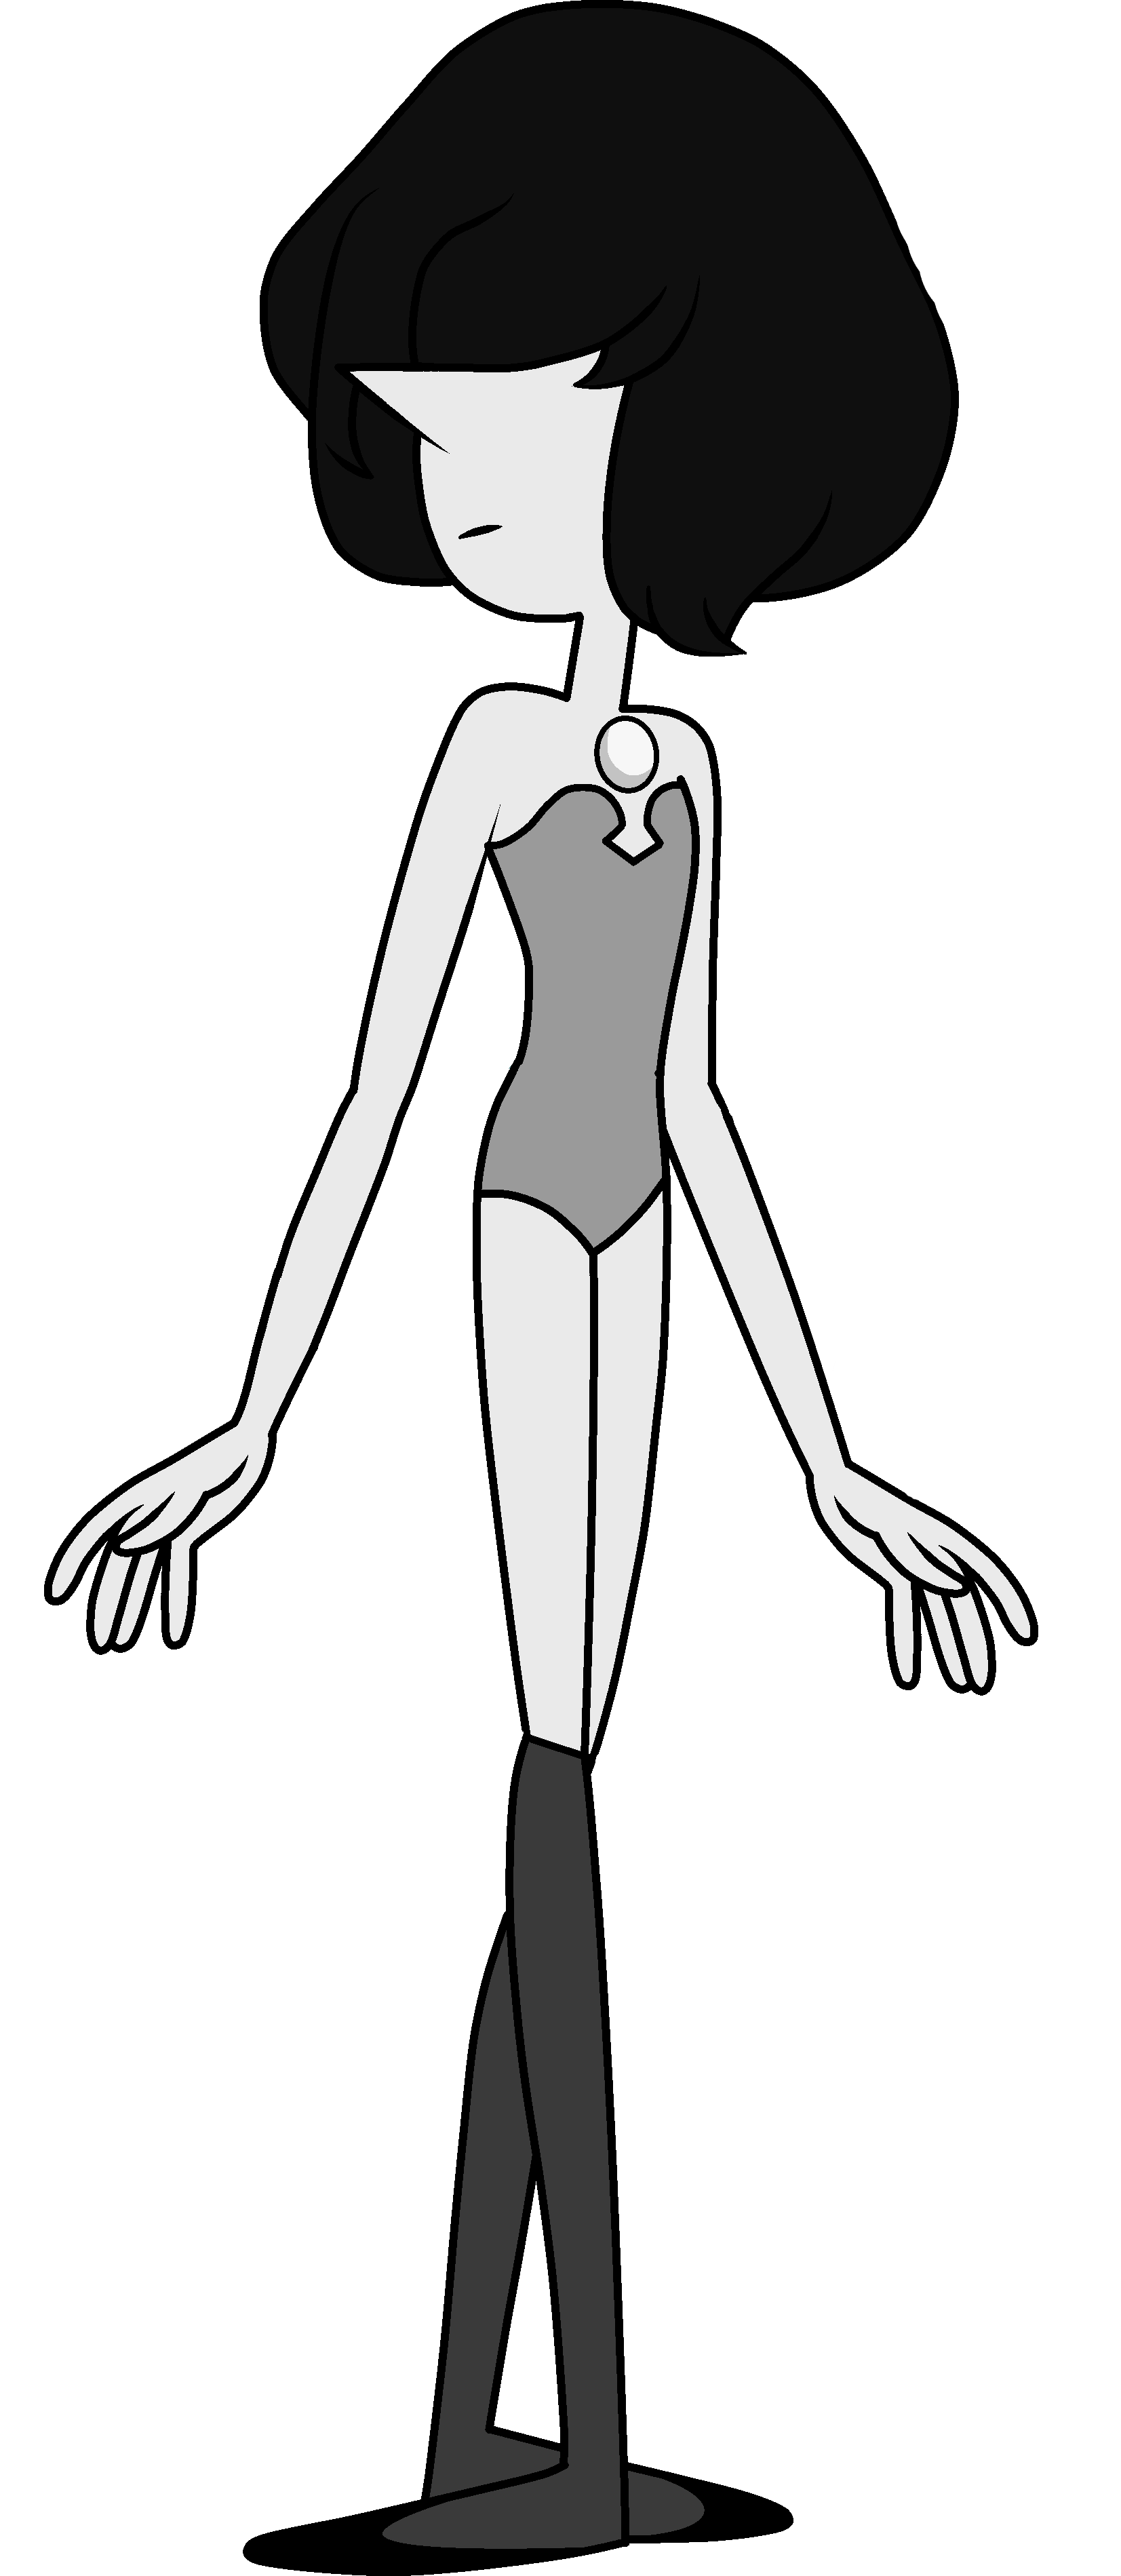 Cartoon arms and legs png. Image black diamonds pearl